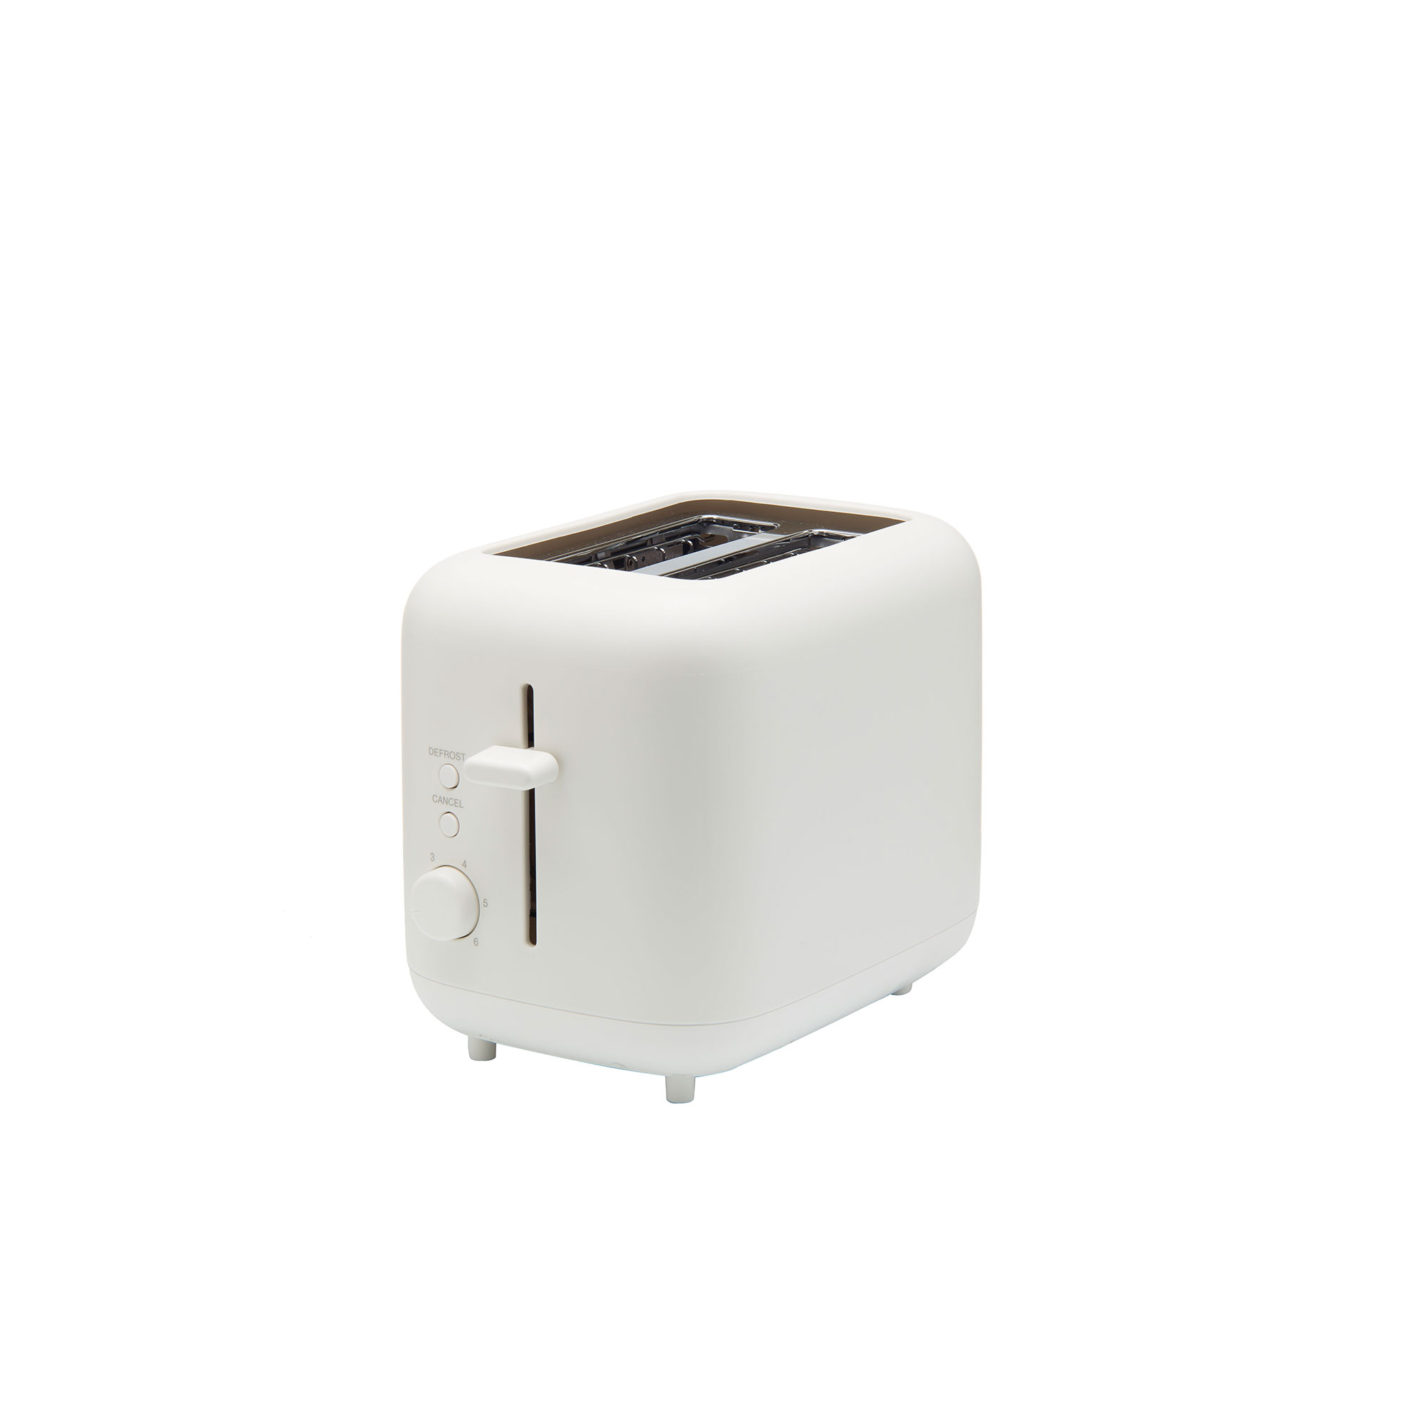 White plastic toaster. Its surfaces are smooth and all edges and corners are rounded.